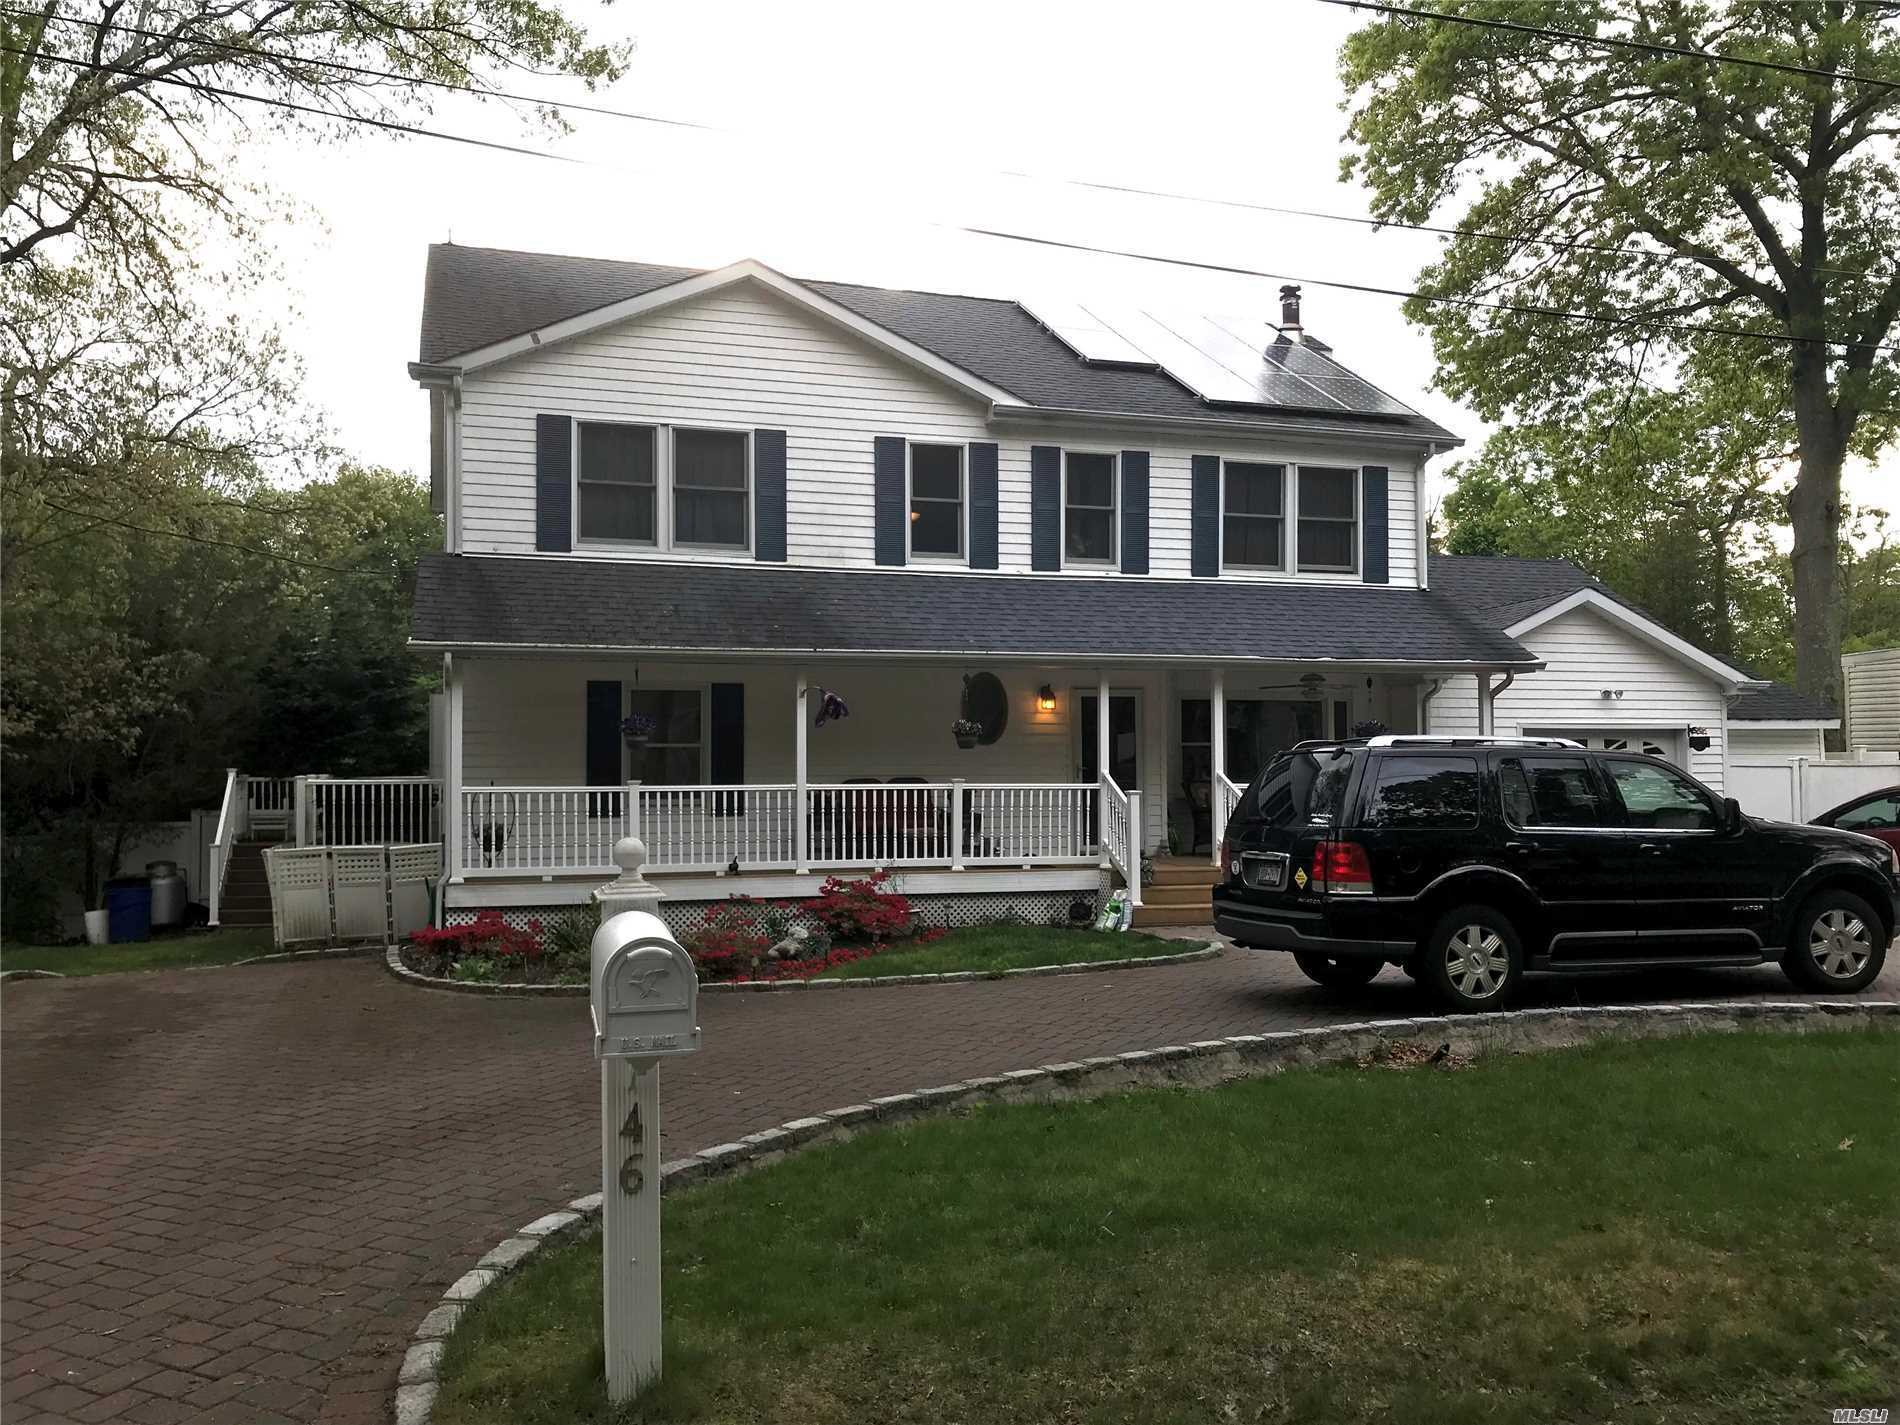 46 Jefferson Ave - Patchogue, New York